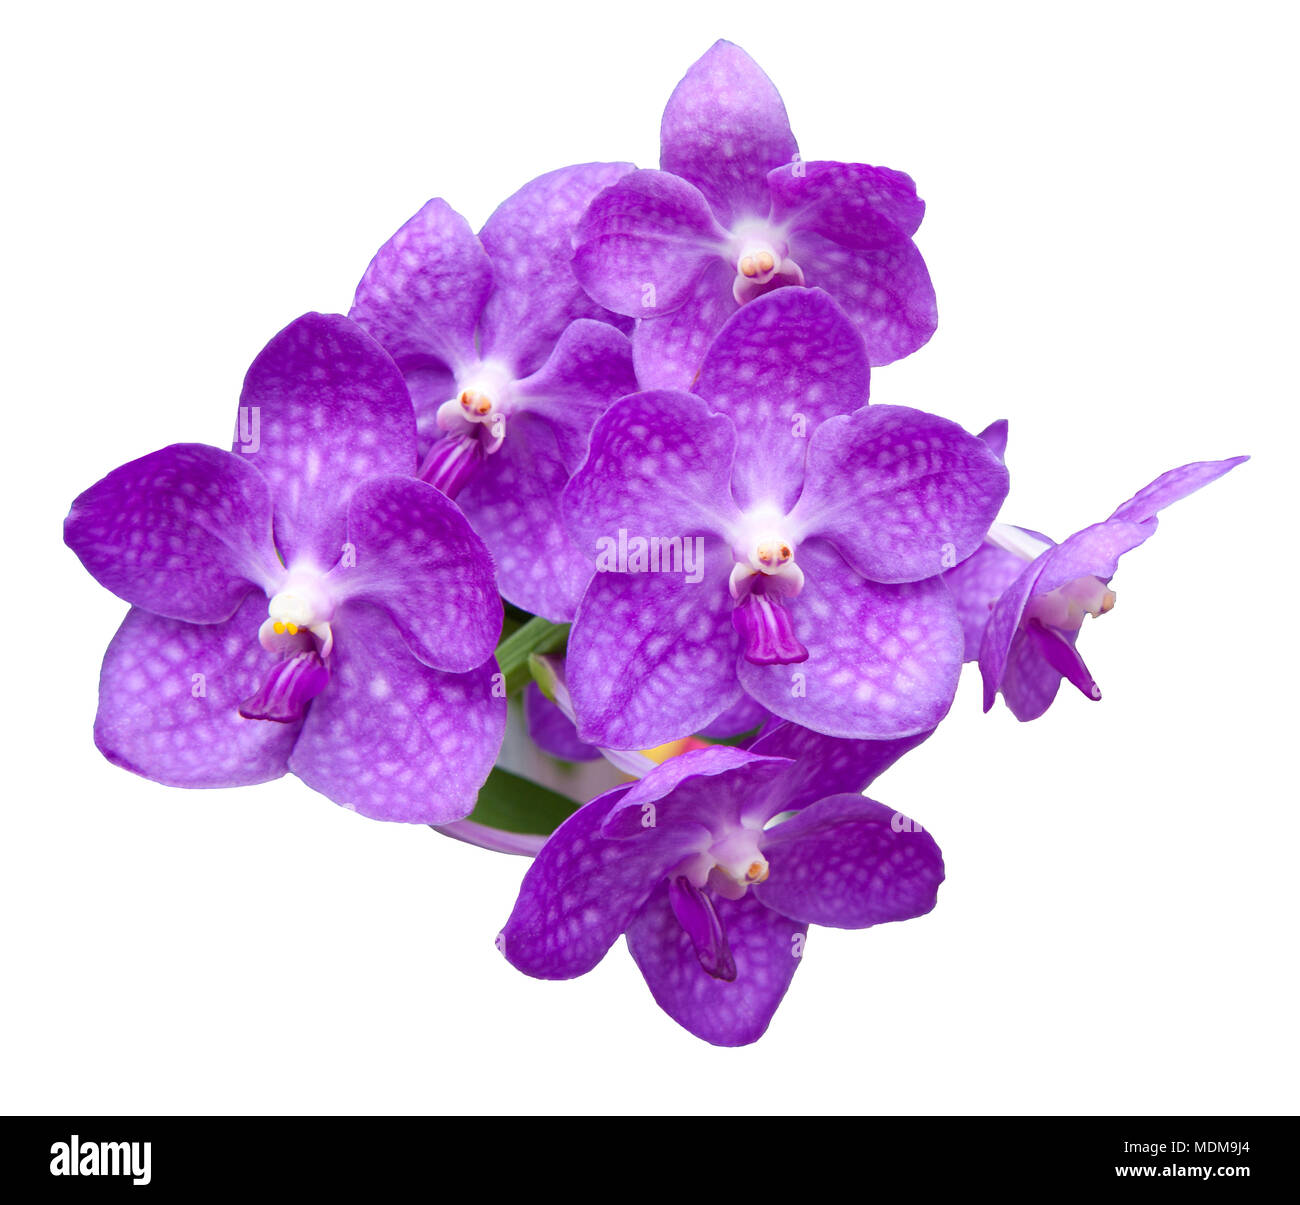 file of orchid flowers bouquet isolated on white background Stock ...